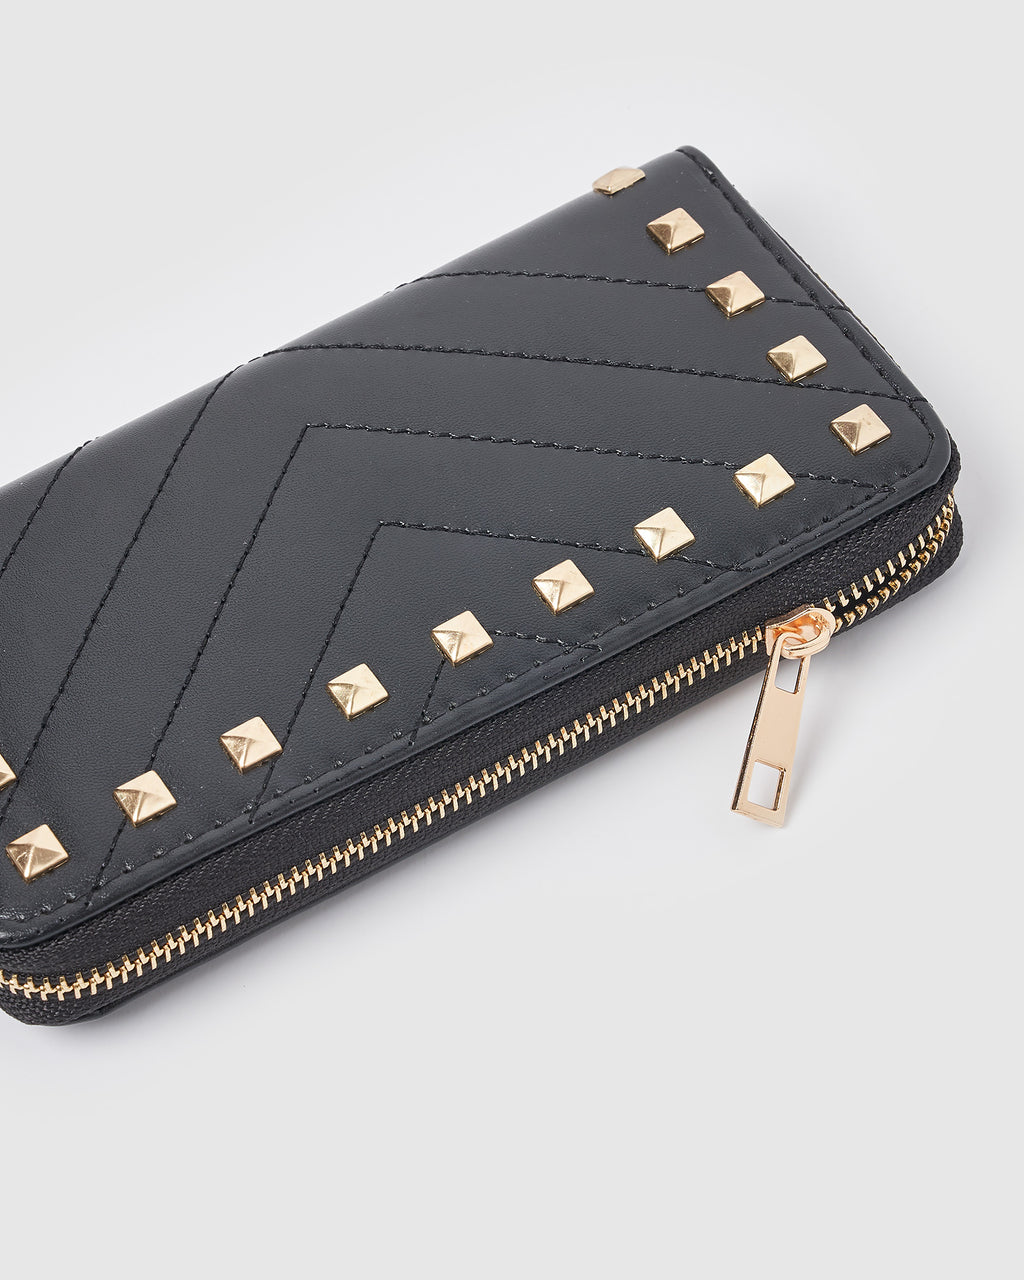 Izoa Tori Wallet Black